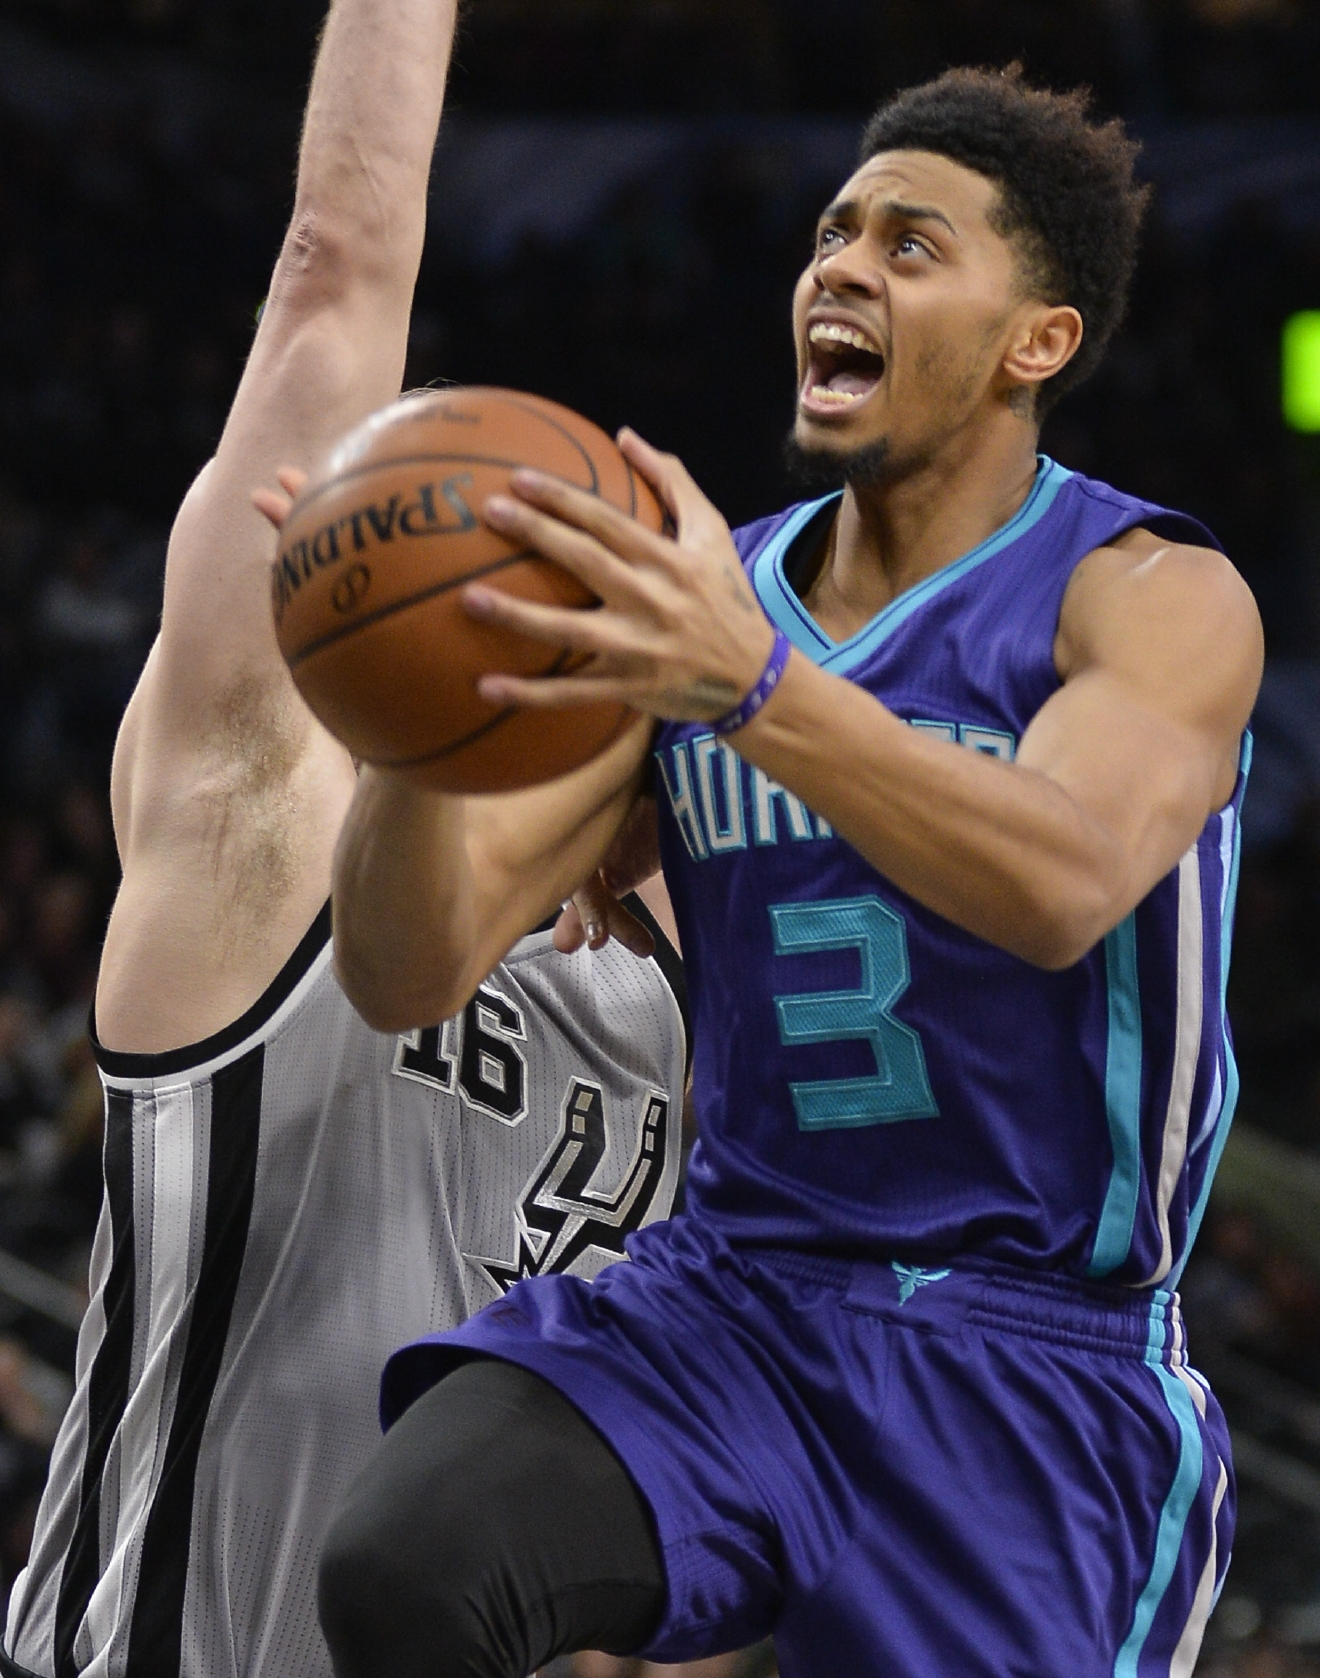 Charlotte Hornets guard Jeremy Lamb (3) shoots against San Antonio Spurs center Pau Gasol, of Spain, during the first half of an NBA basketball game, Saturday, Jan. 7, 2017, in San Antonio. (AP Photo/Darren Abate)